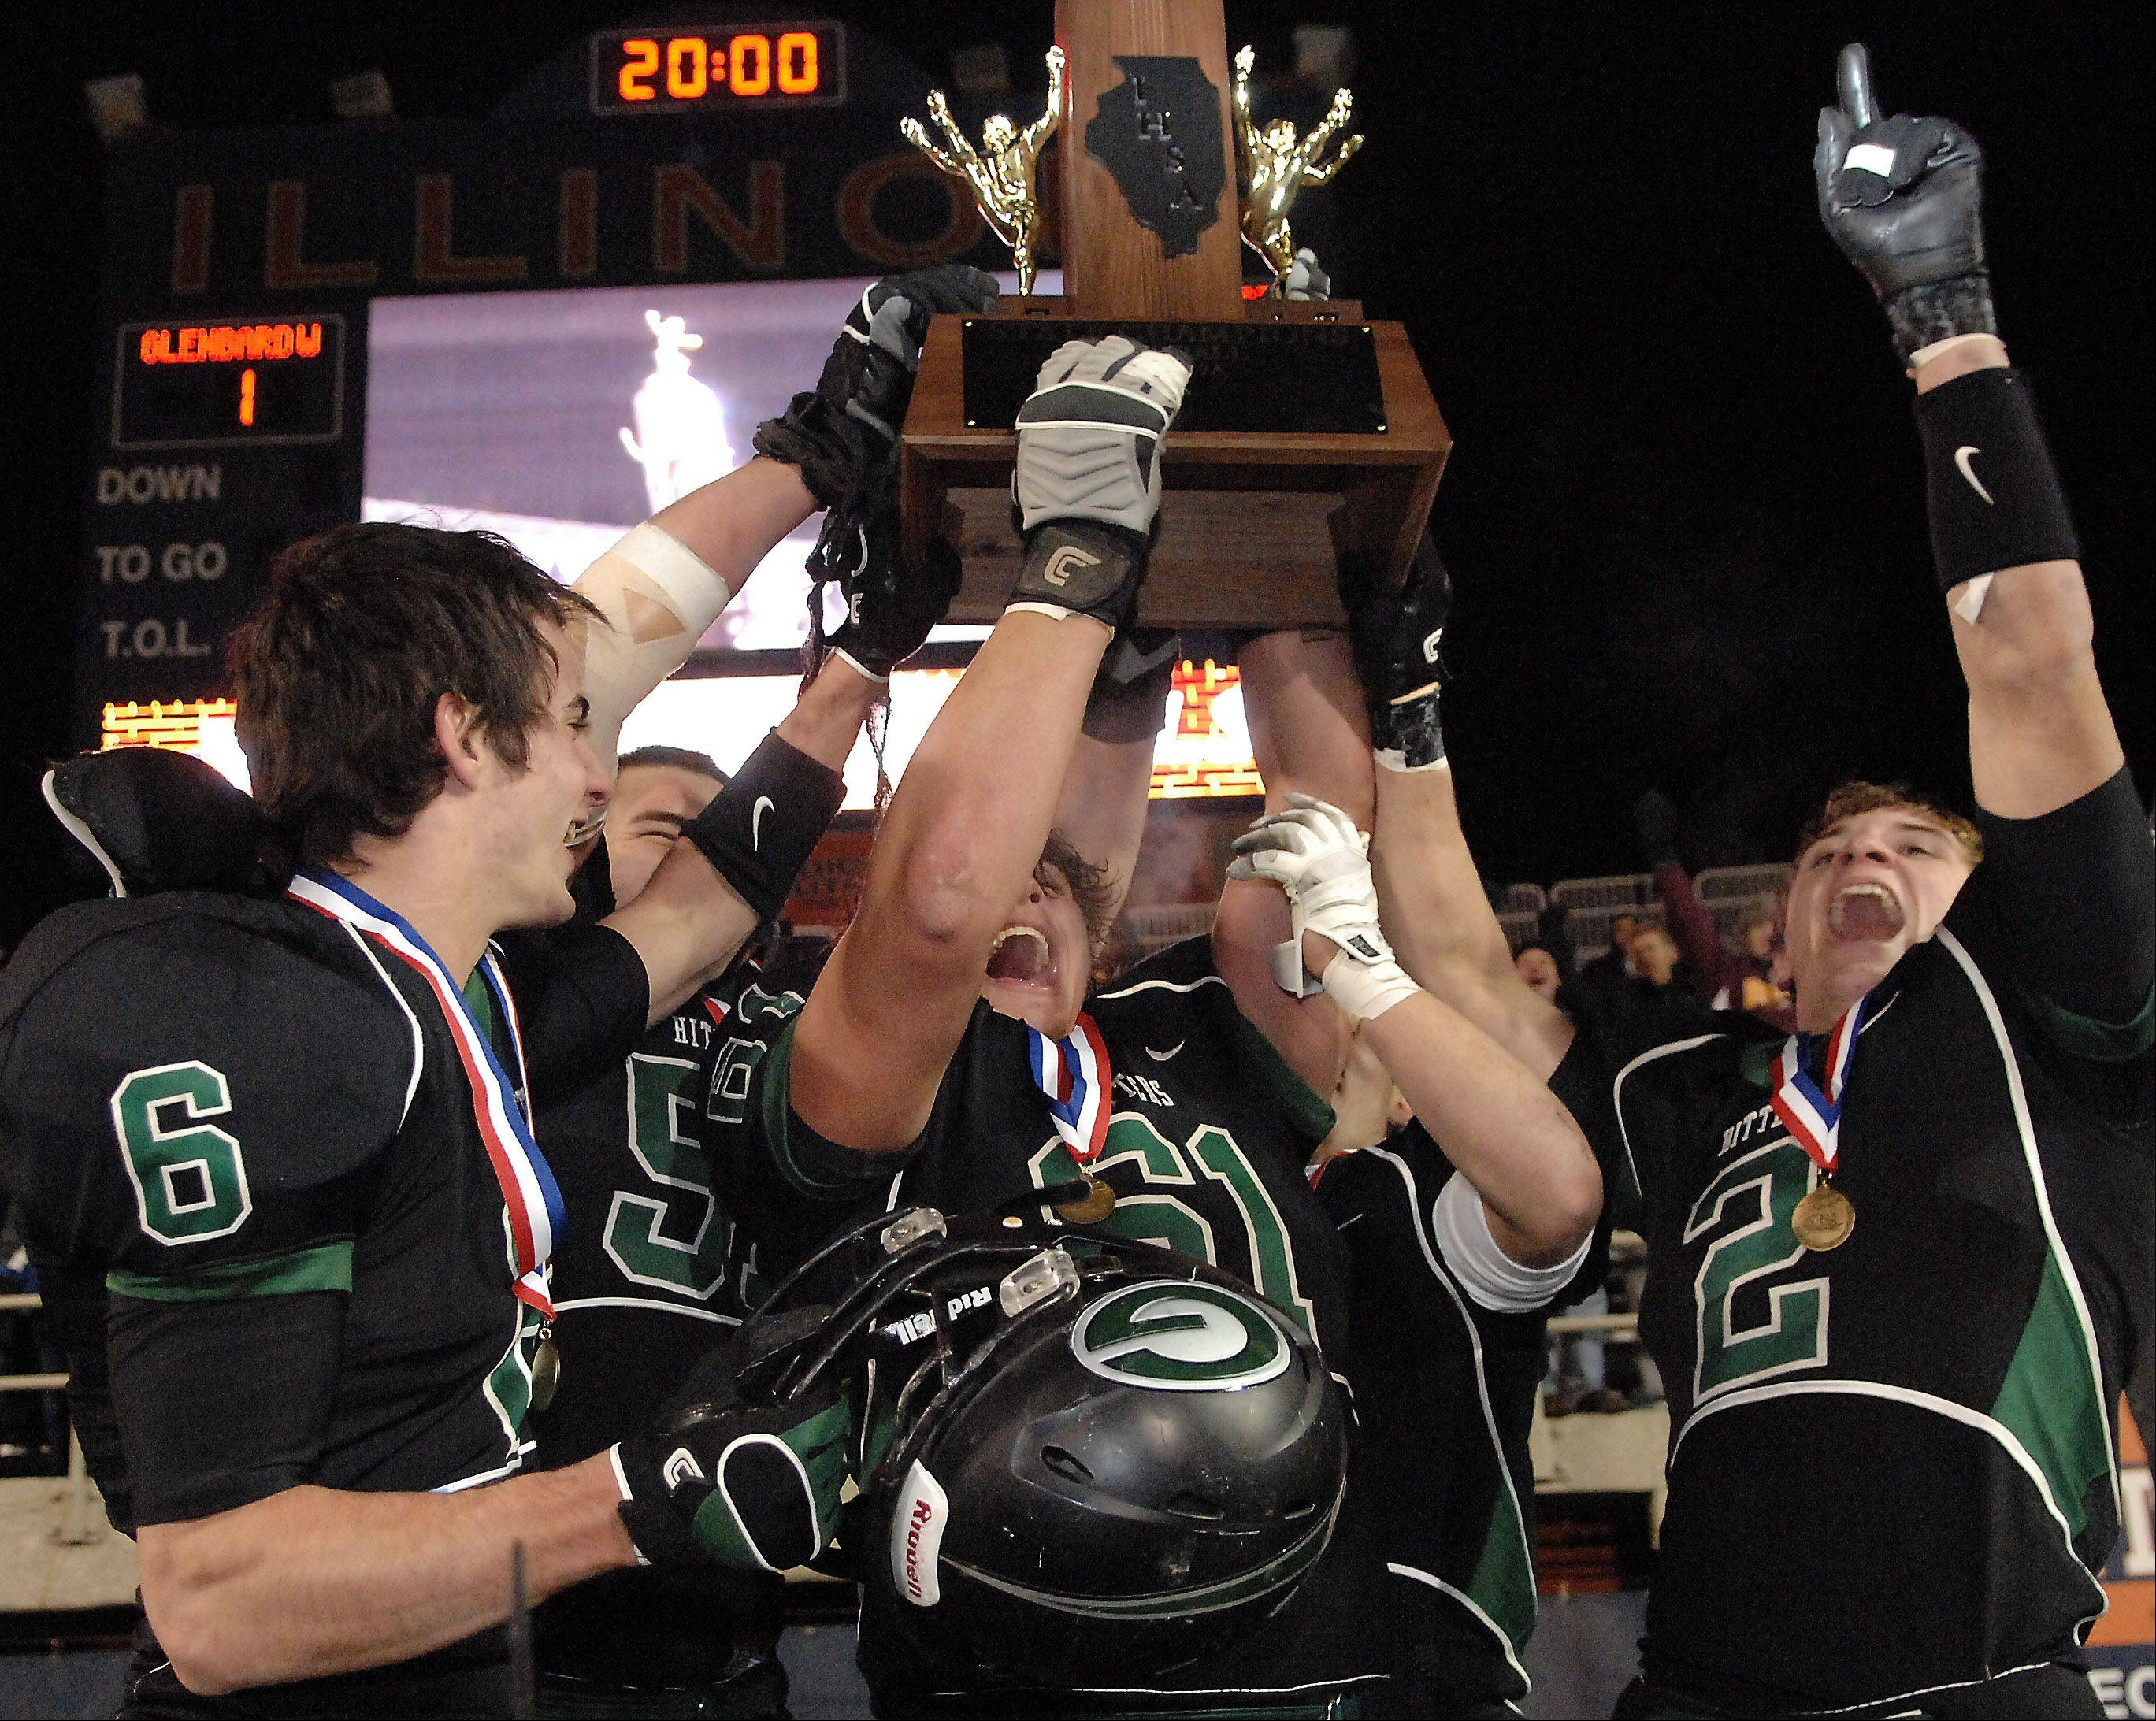 The Glenbard West captains hoist the championship trophy following their win over Lincoln-Way East during Saturday�s Class 7A state title game at Memorial Stadium in Champaign.